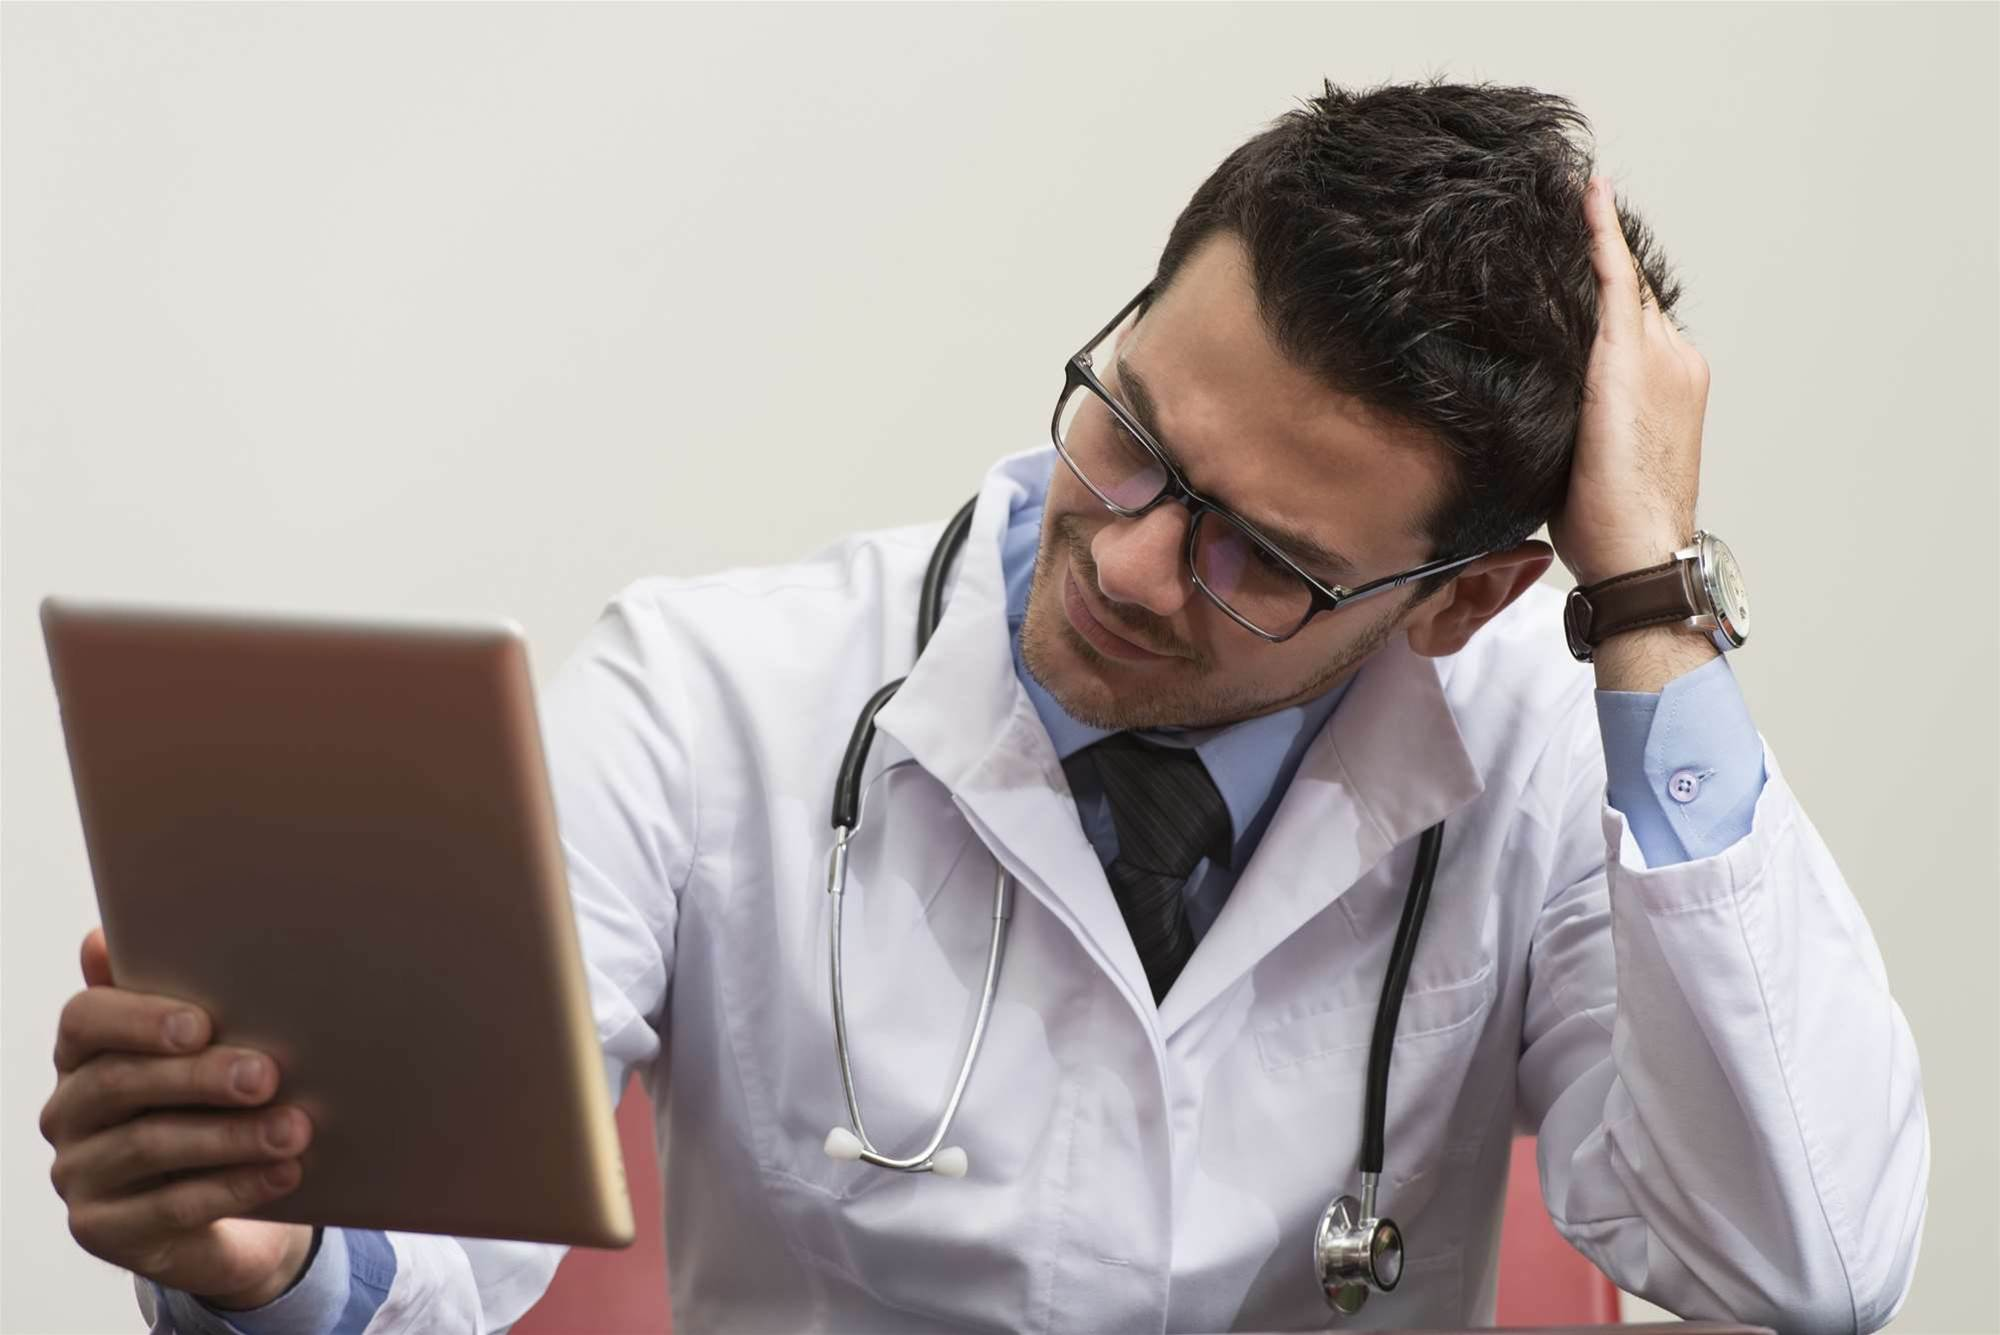 GPs failing to regularly upload e-health records